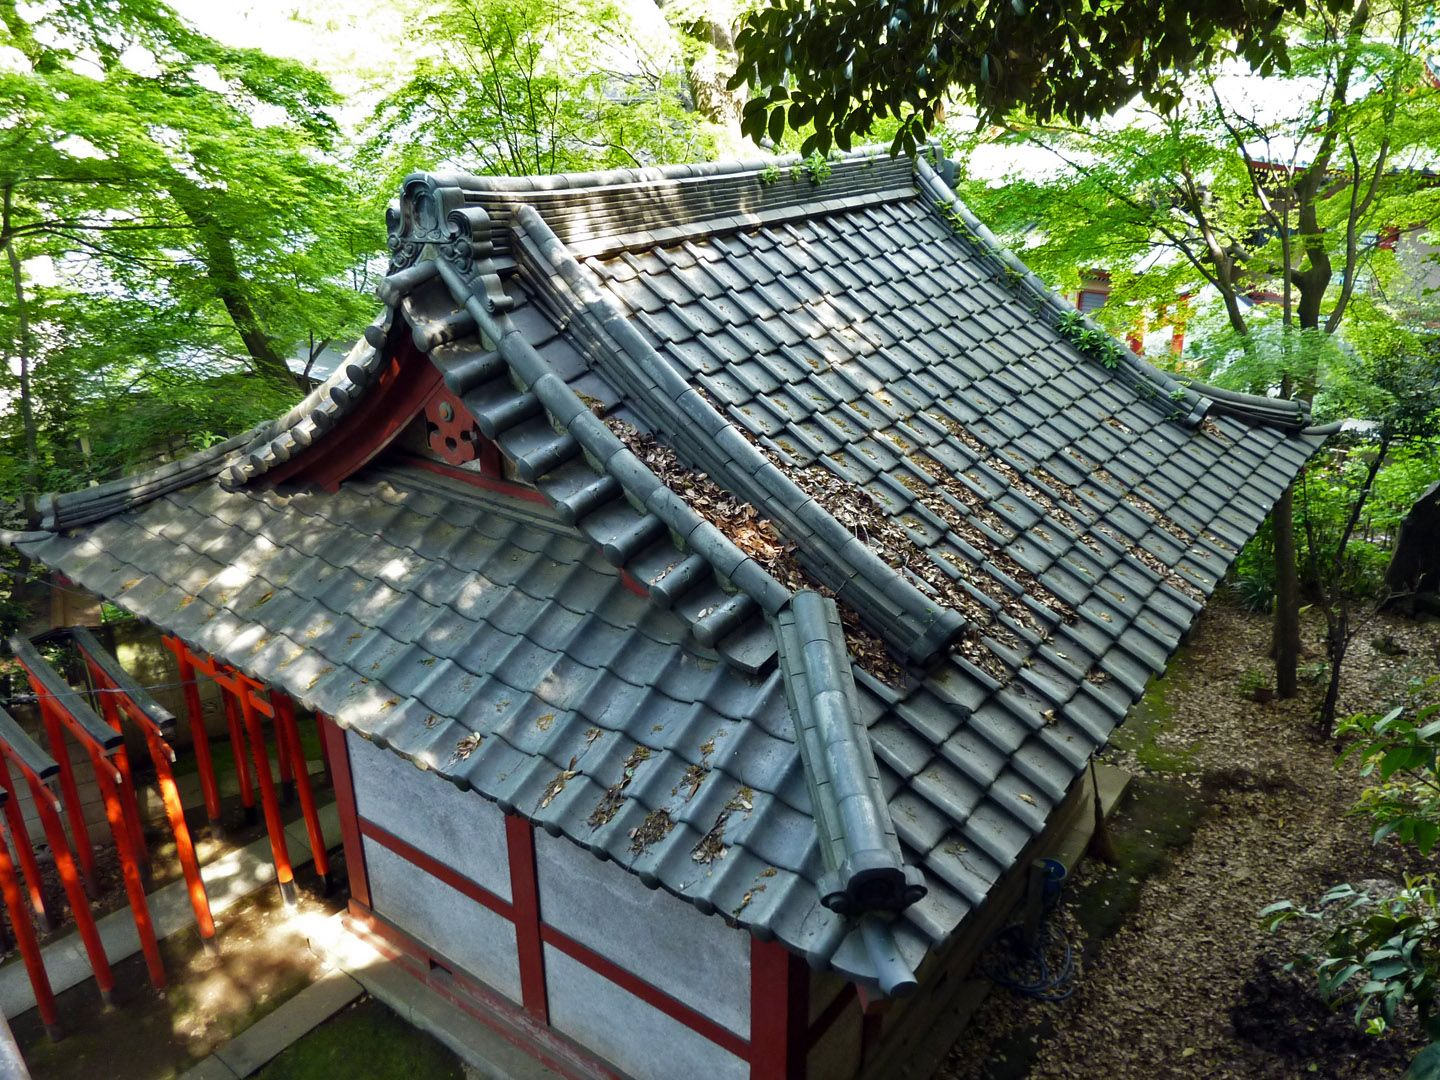 03143016trim Jpg 1440 1080 Japanese Buildings Japanese Home Design Gazebo Roof